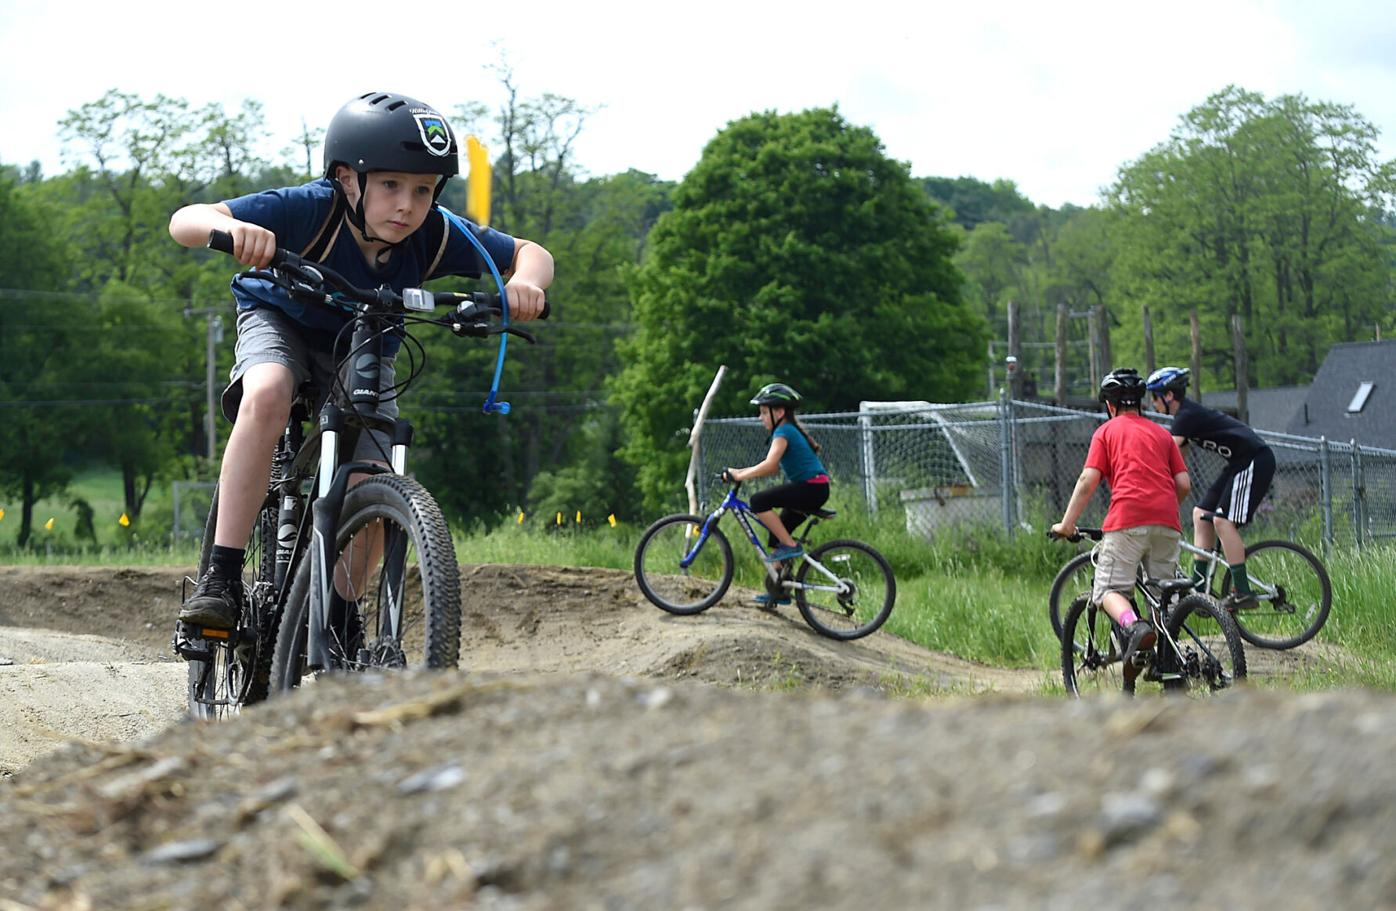 Cycling enthusiasts benefit from new track in Putney